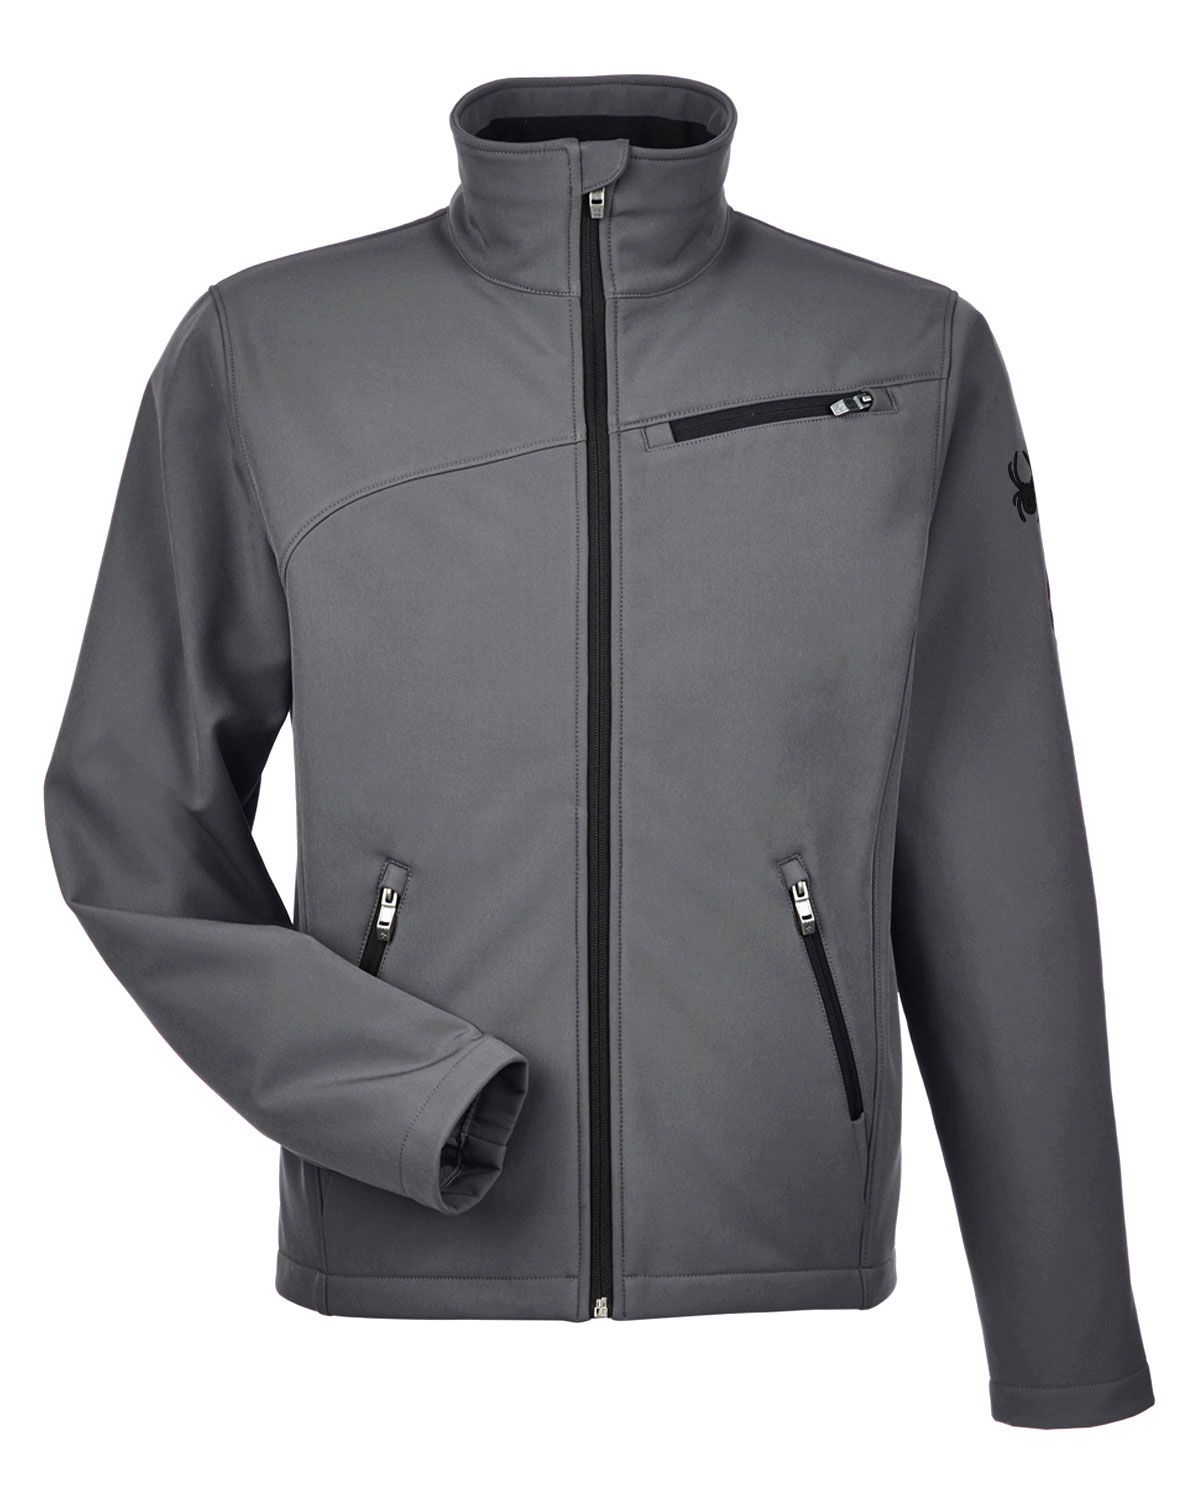 Spyder Mens Transport Soft Shell Jacket